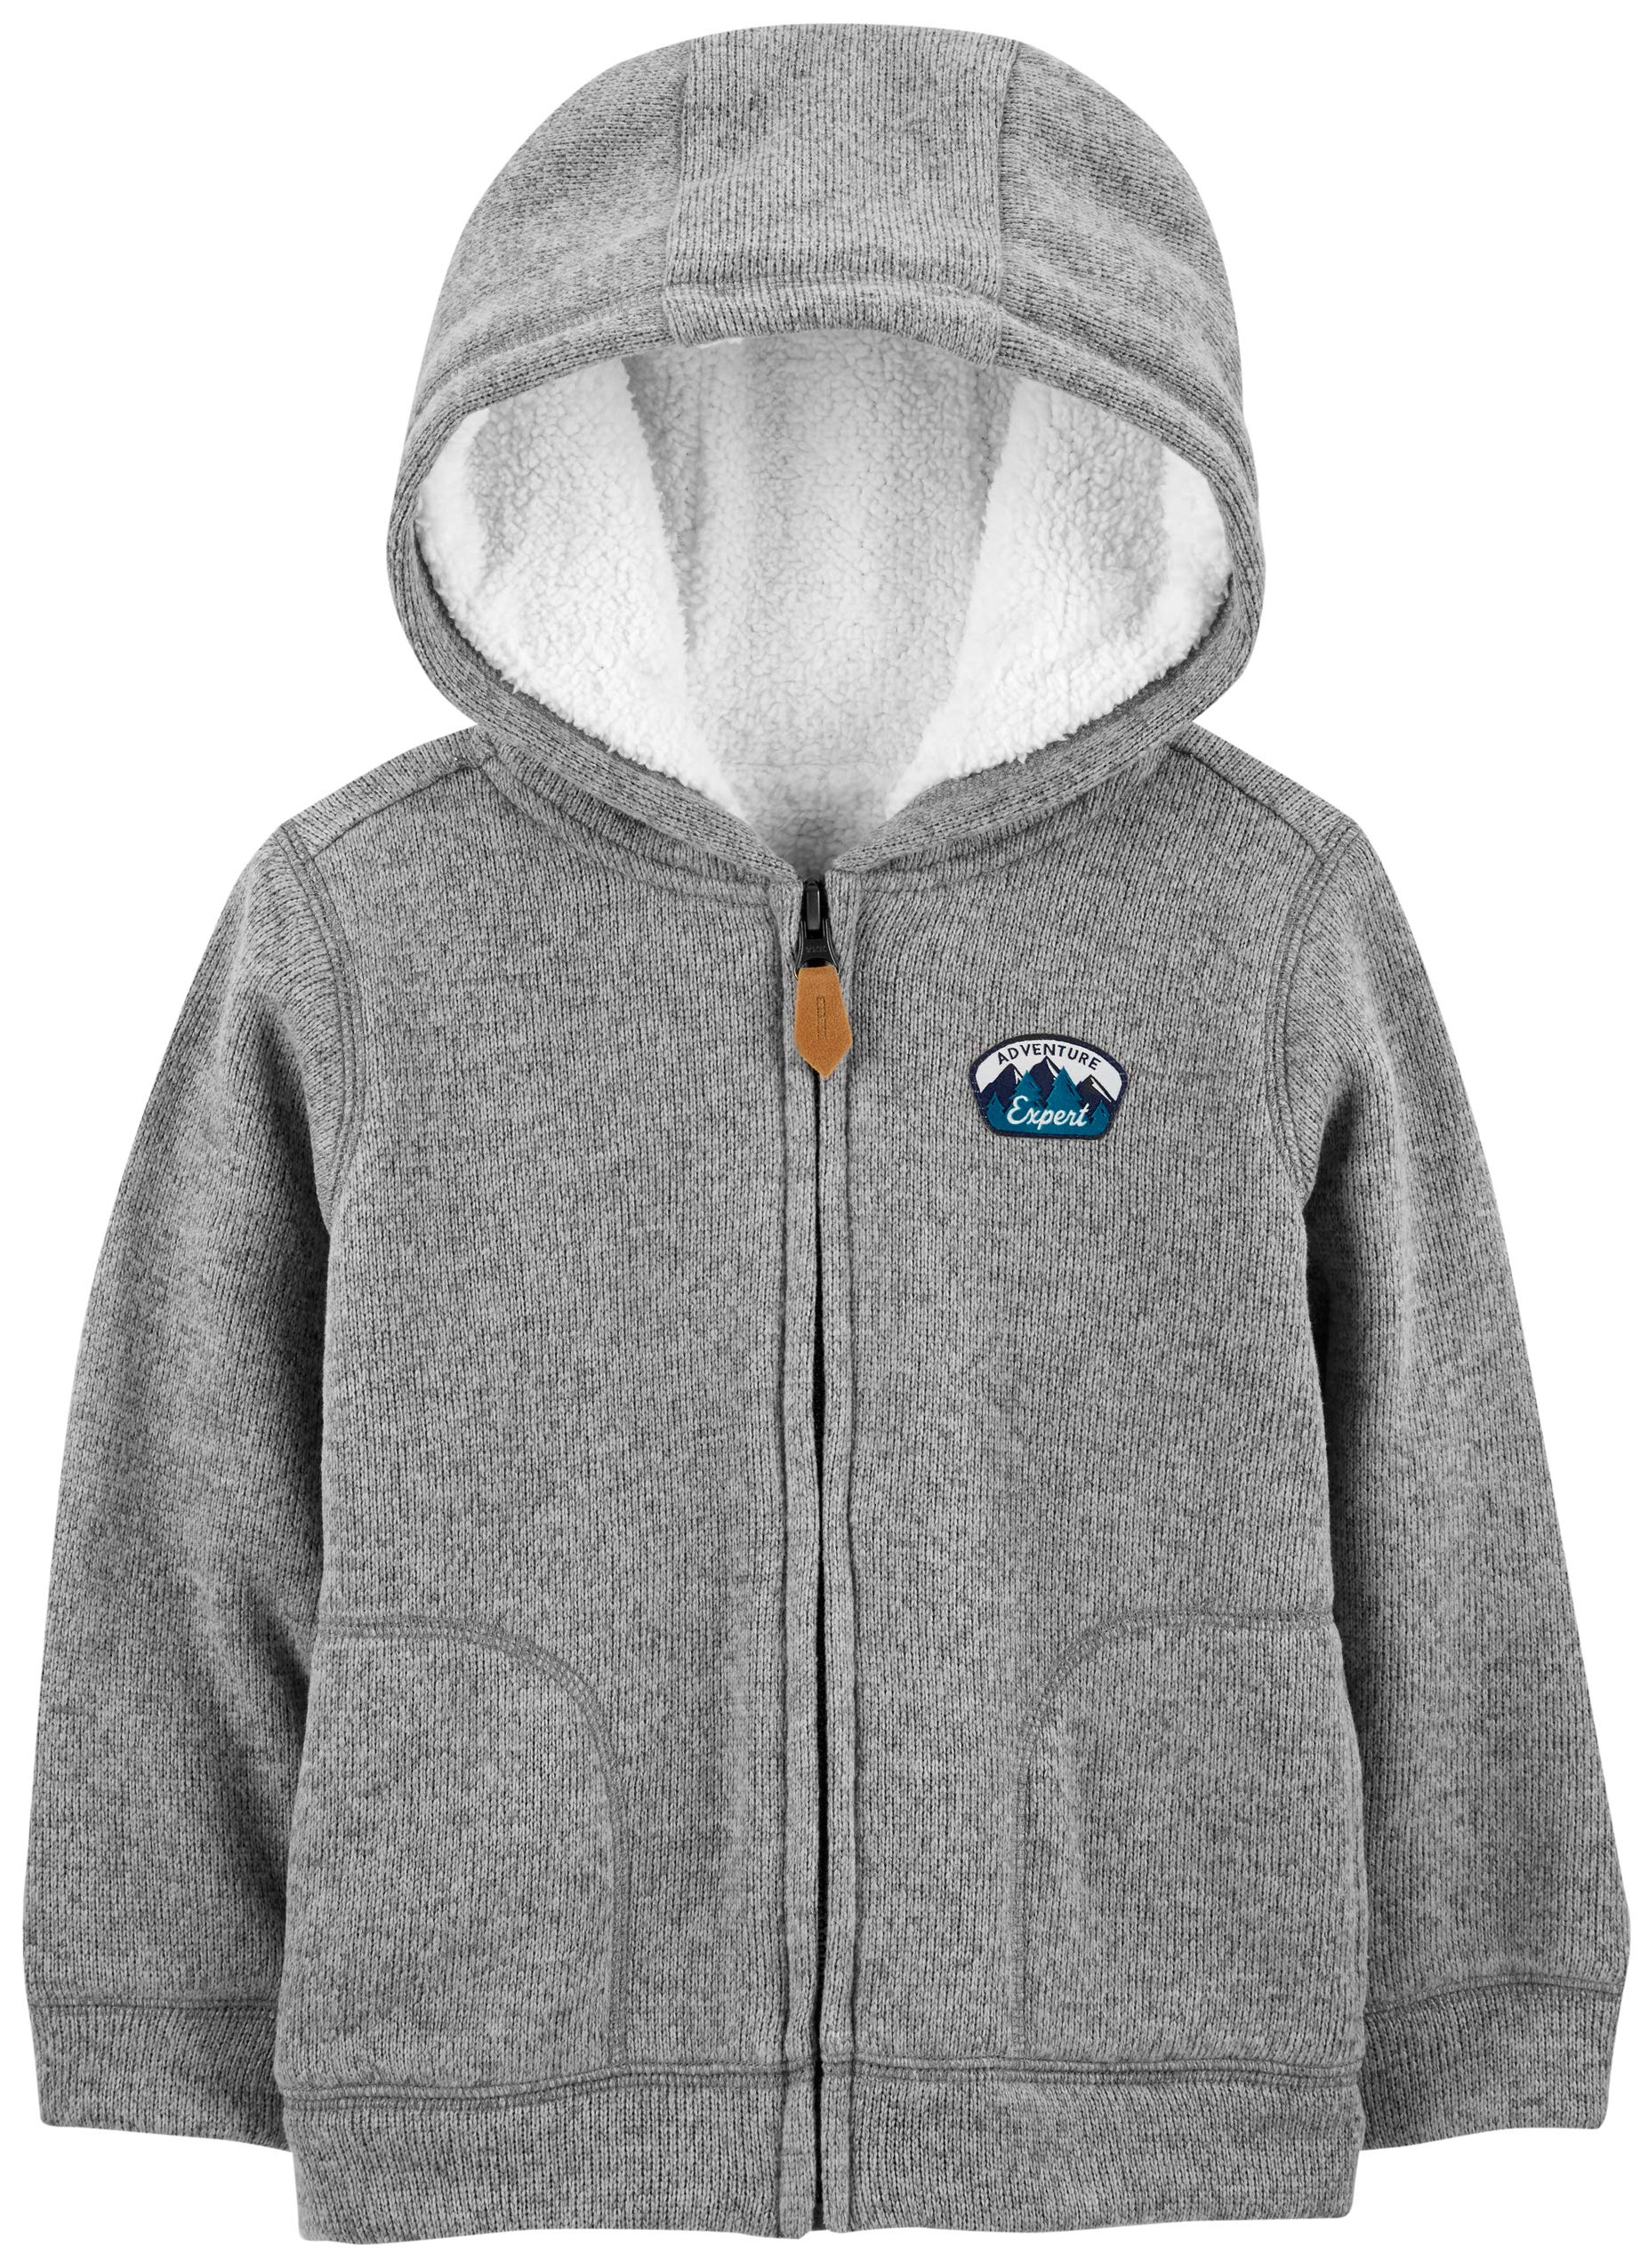 Simple Joys by Carter's Boys' Toddler Hooded Fleece Jacket with Sherpa Lining, Grey, 3T